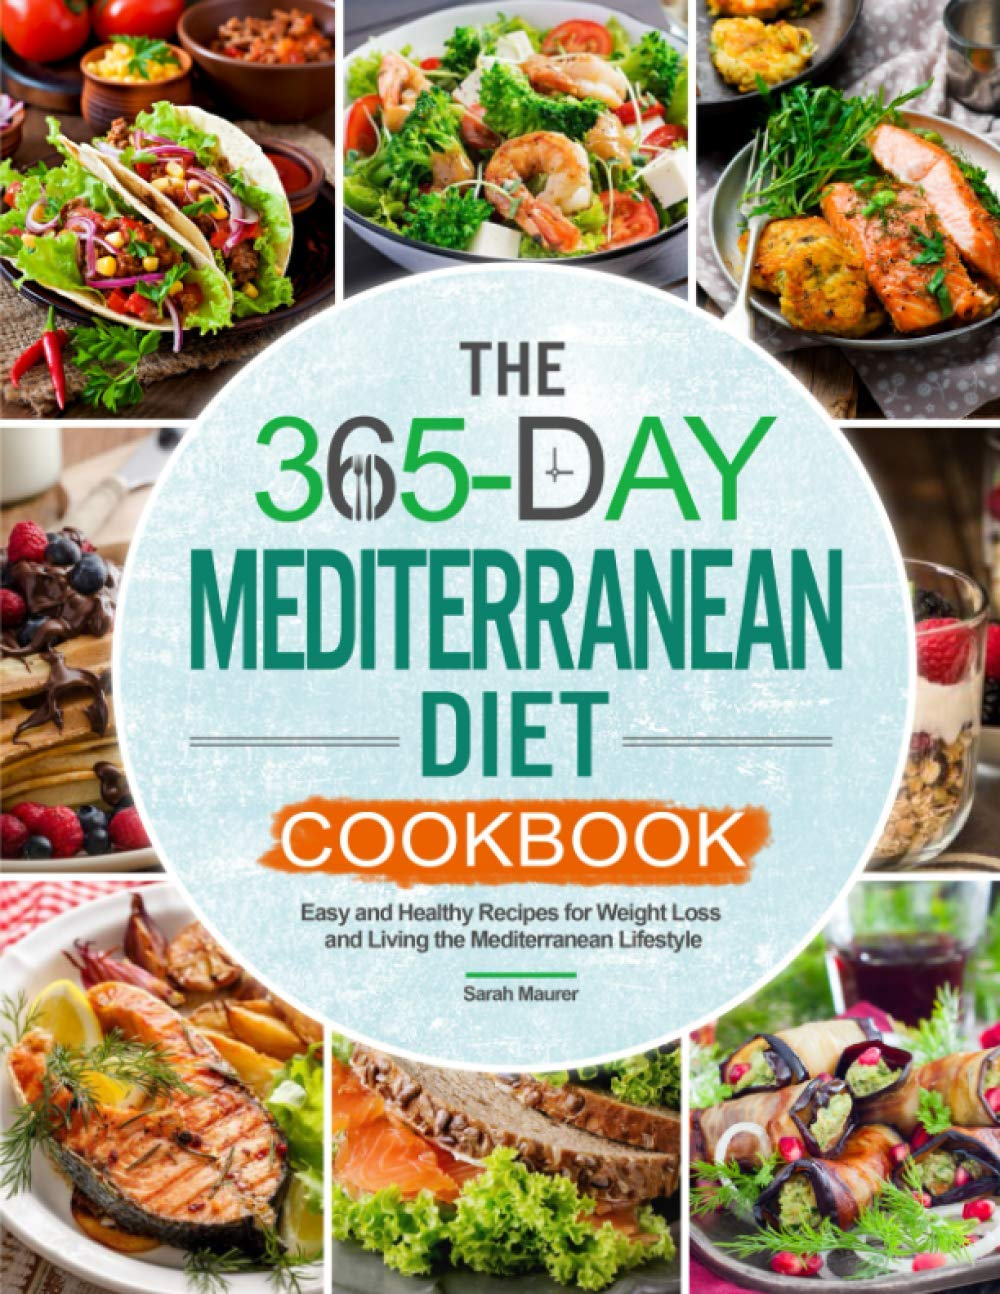 The 365-Day Mediterranean Diet Cookbook: Easy and Healthy Recipes for Weight Loss and Living the Mediterranean Lifestyle 1